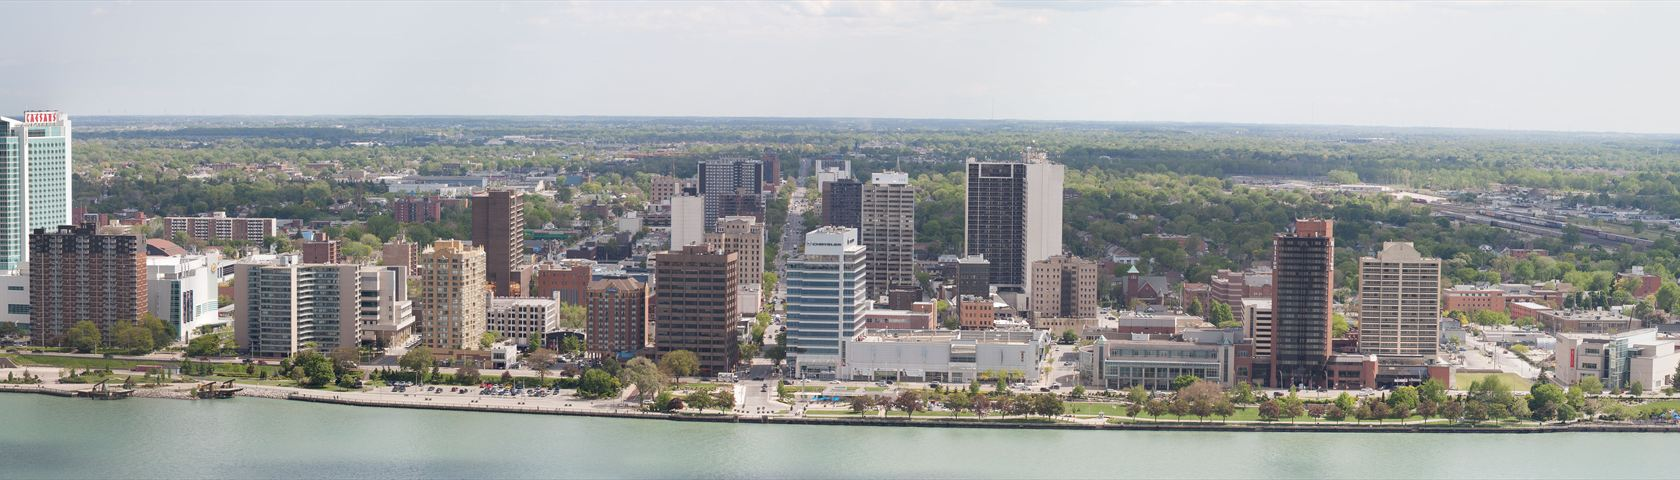 Aerial View of the Windsor Canada Shoreline